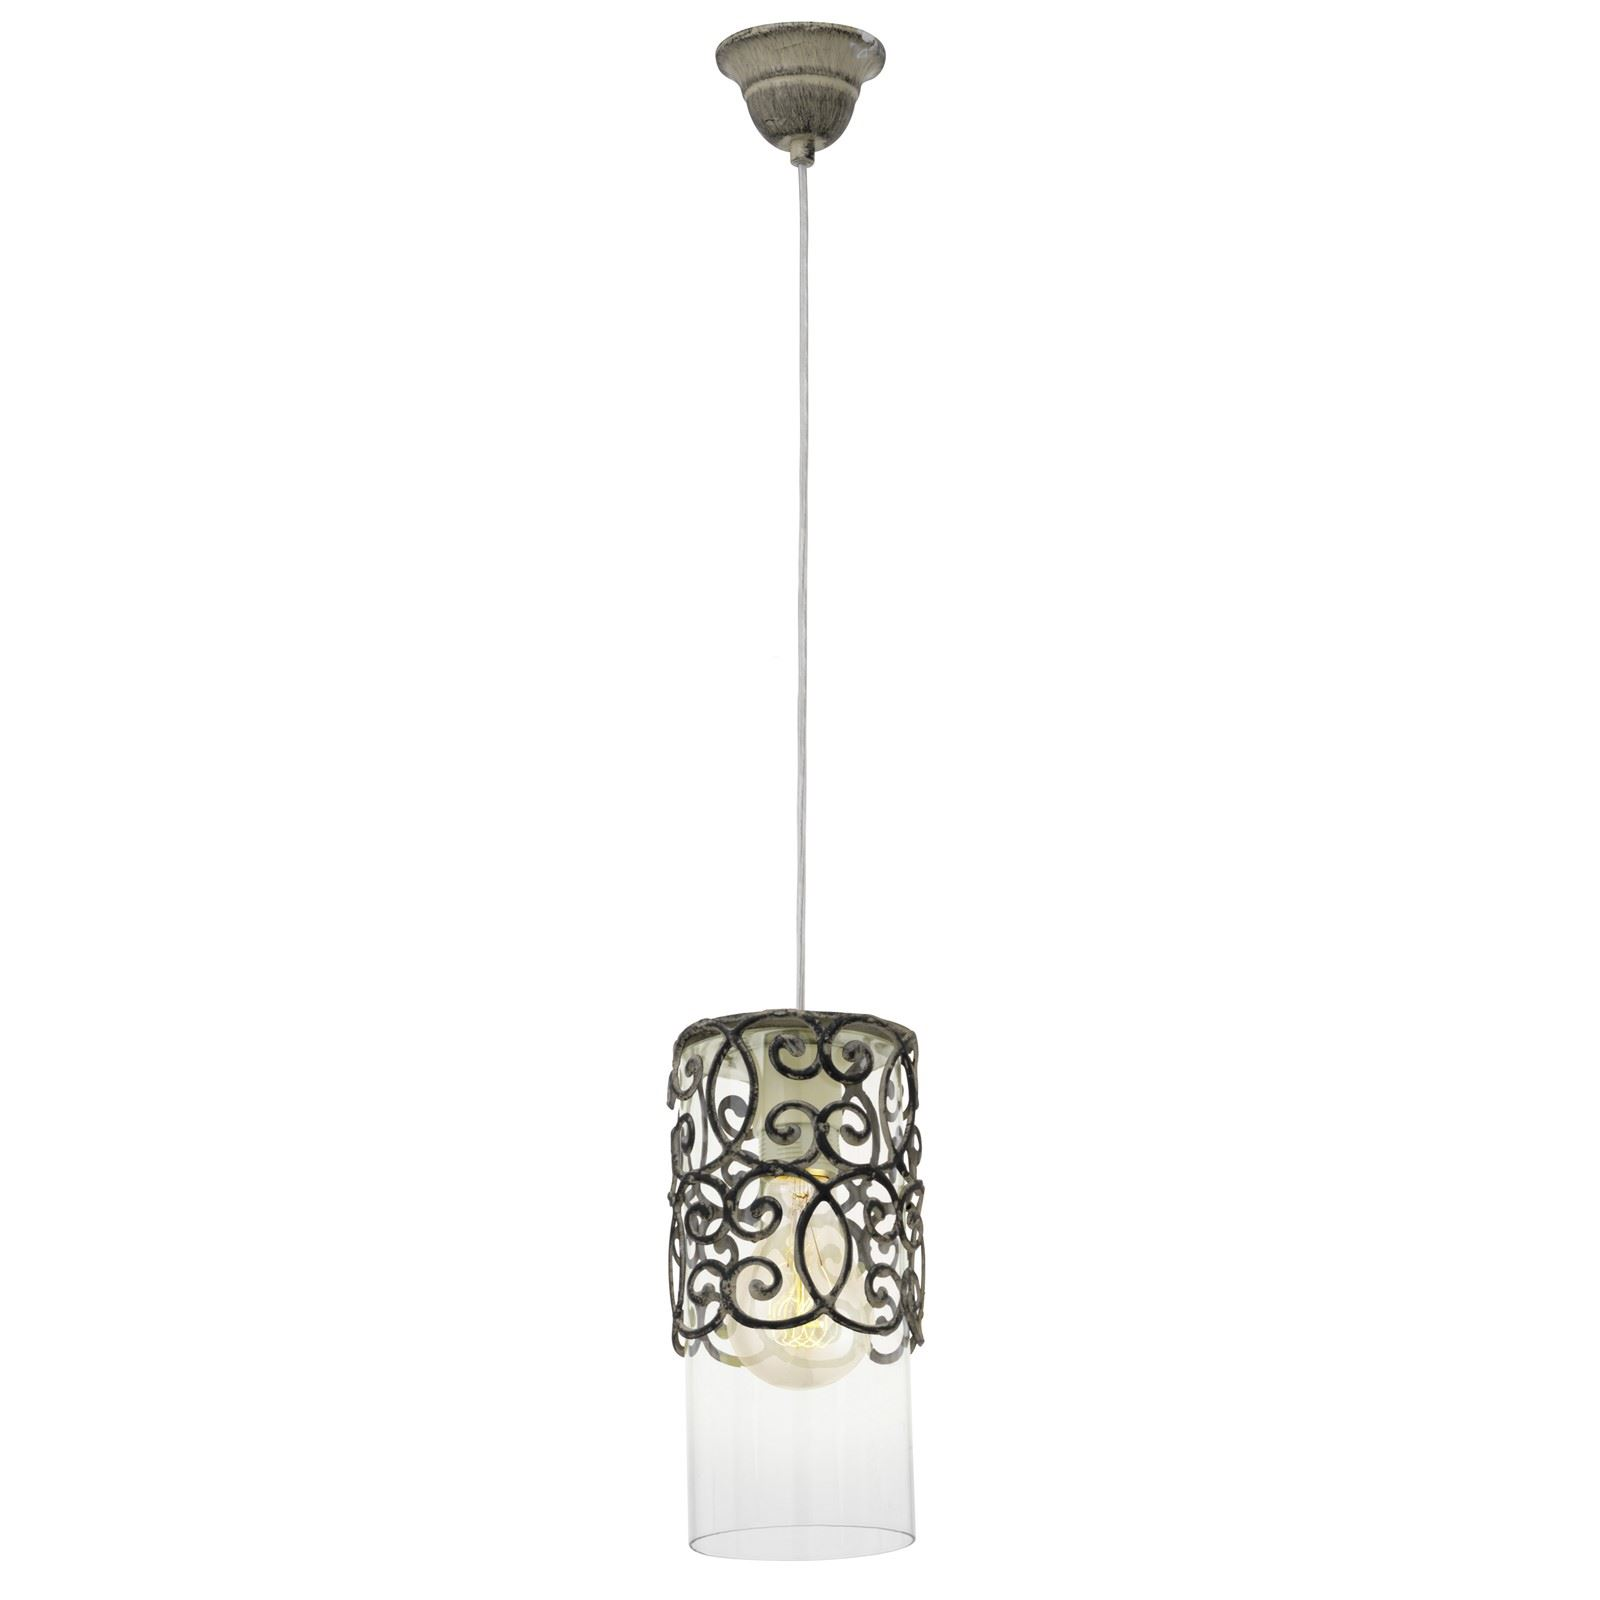 Cardigan Decorative Hanging Pendant Light 1 E27 Brown Patina